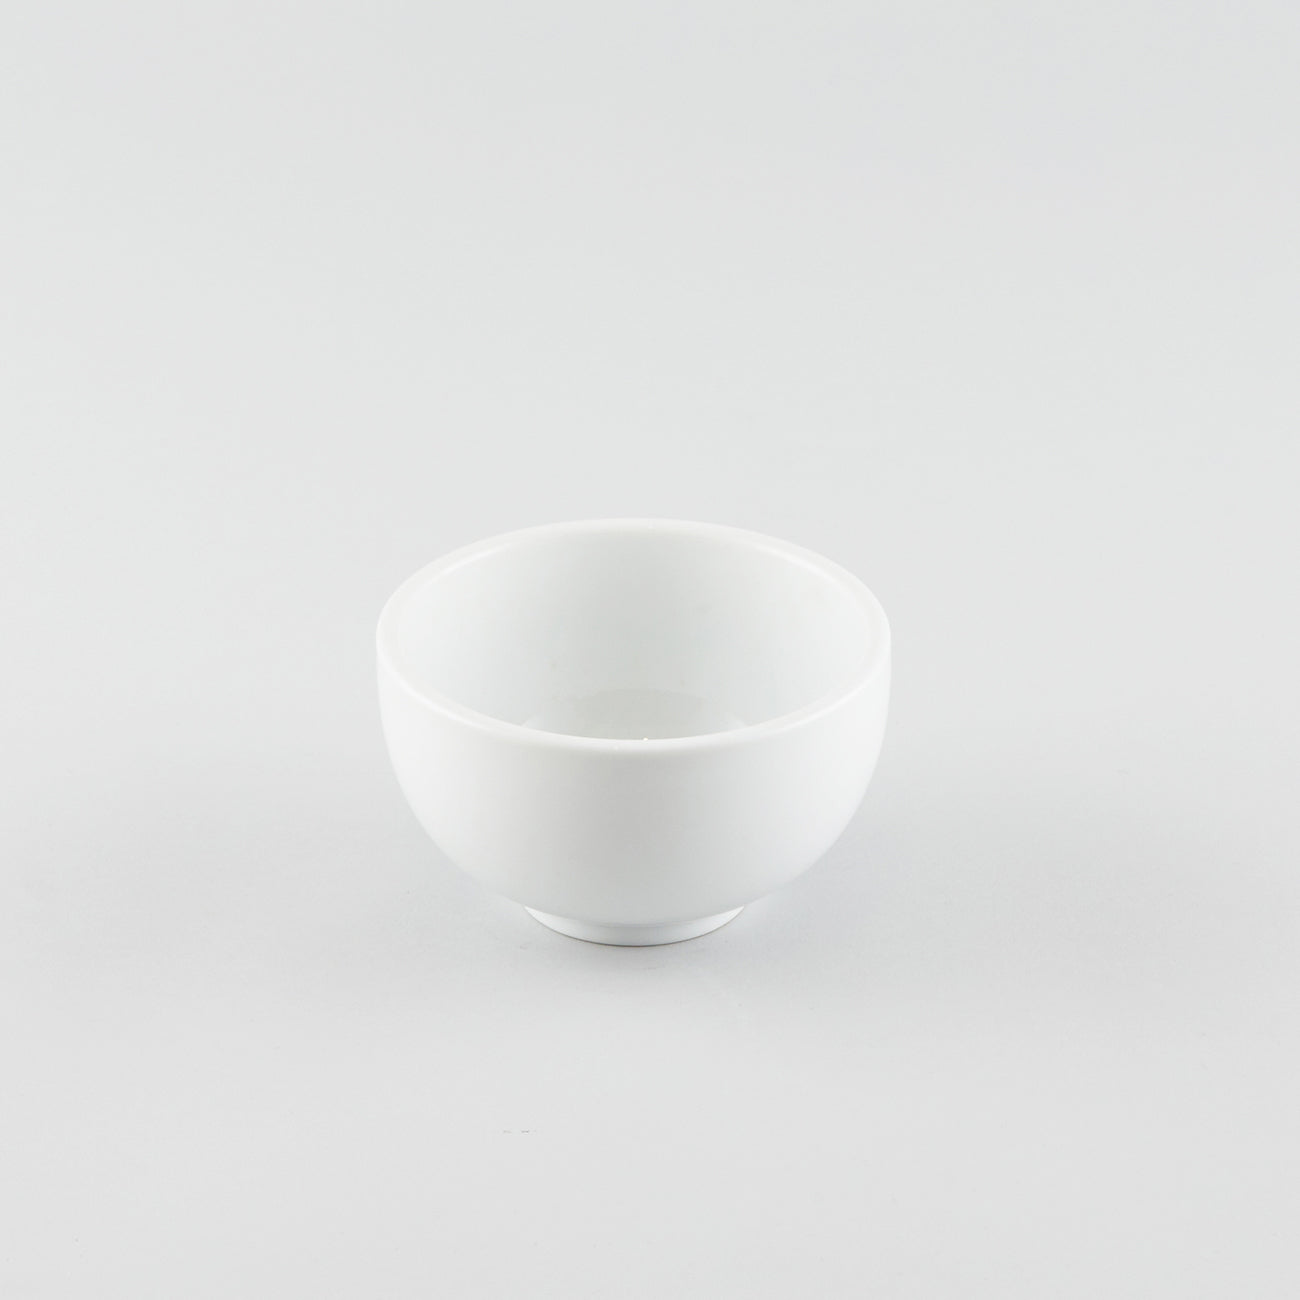 Rounded Donburi Side Bowl - White (S) 24 fl oz.